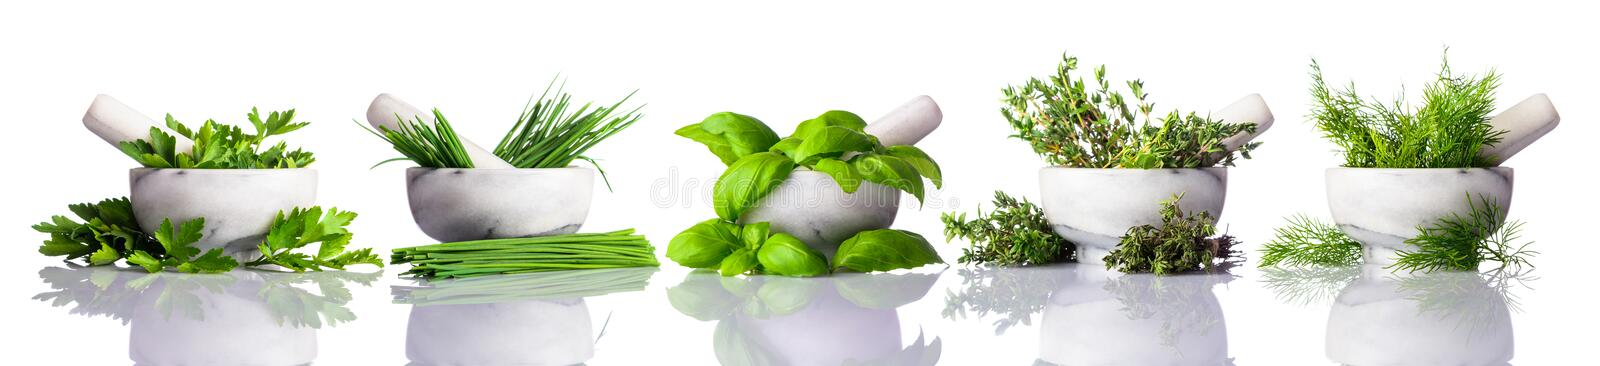 Pestle and Mortar with Green Herbs on White Background. Fresh green organic Herbs in Pestle and Mortar isolated on white background stock photo